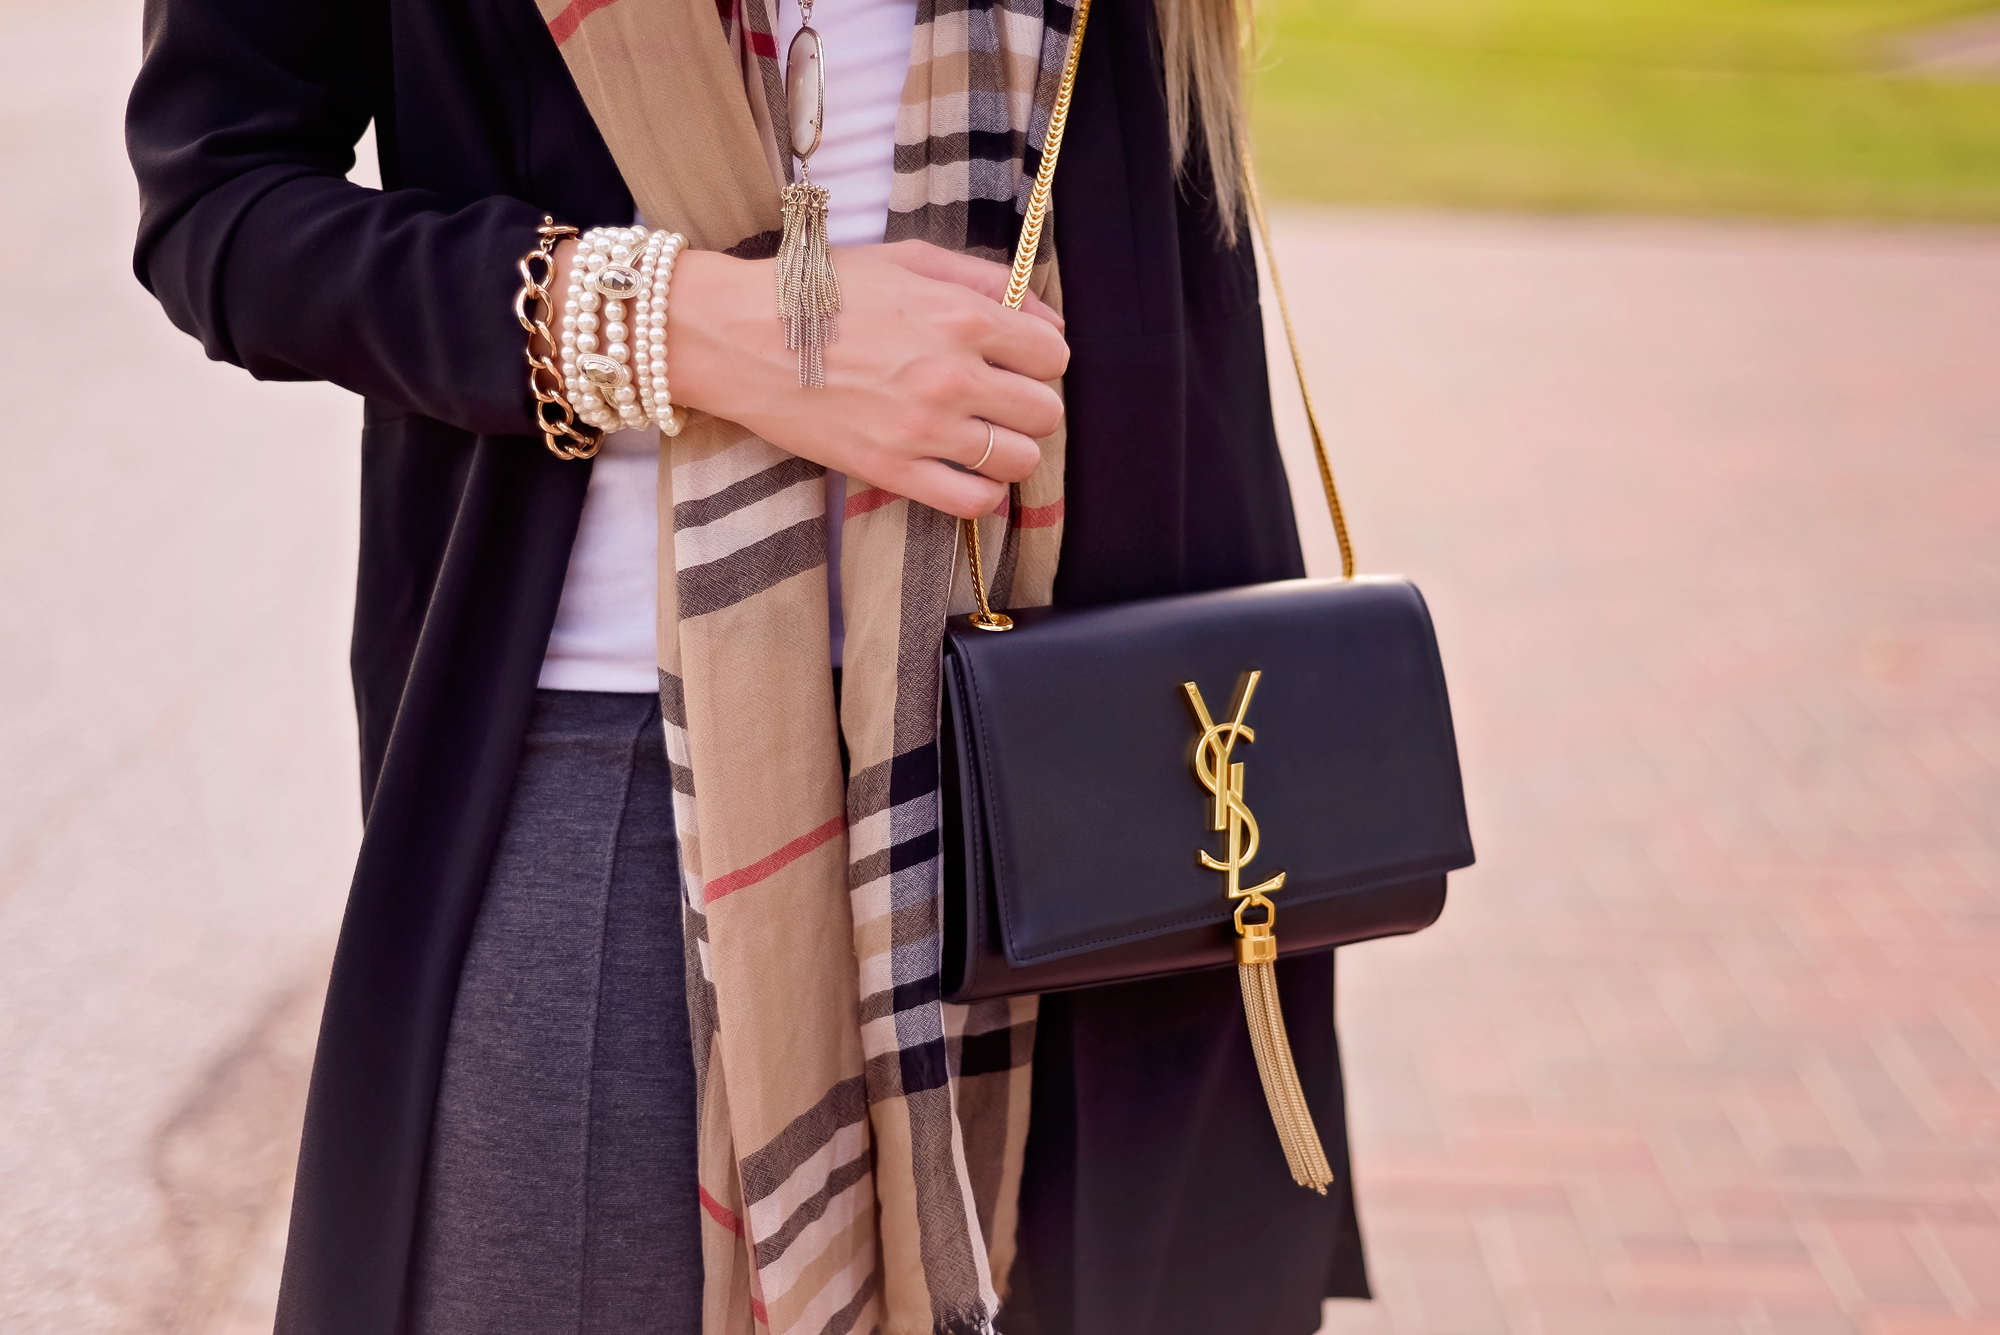 Designer plaid and bags { featuring ysl and burberry }